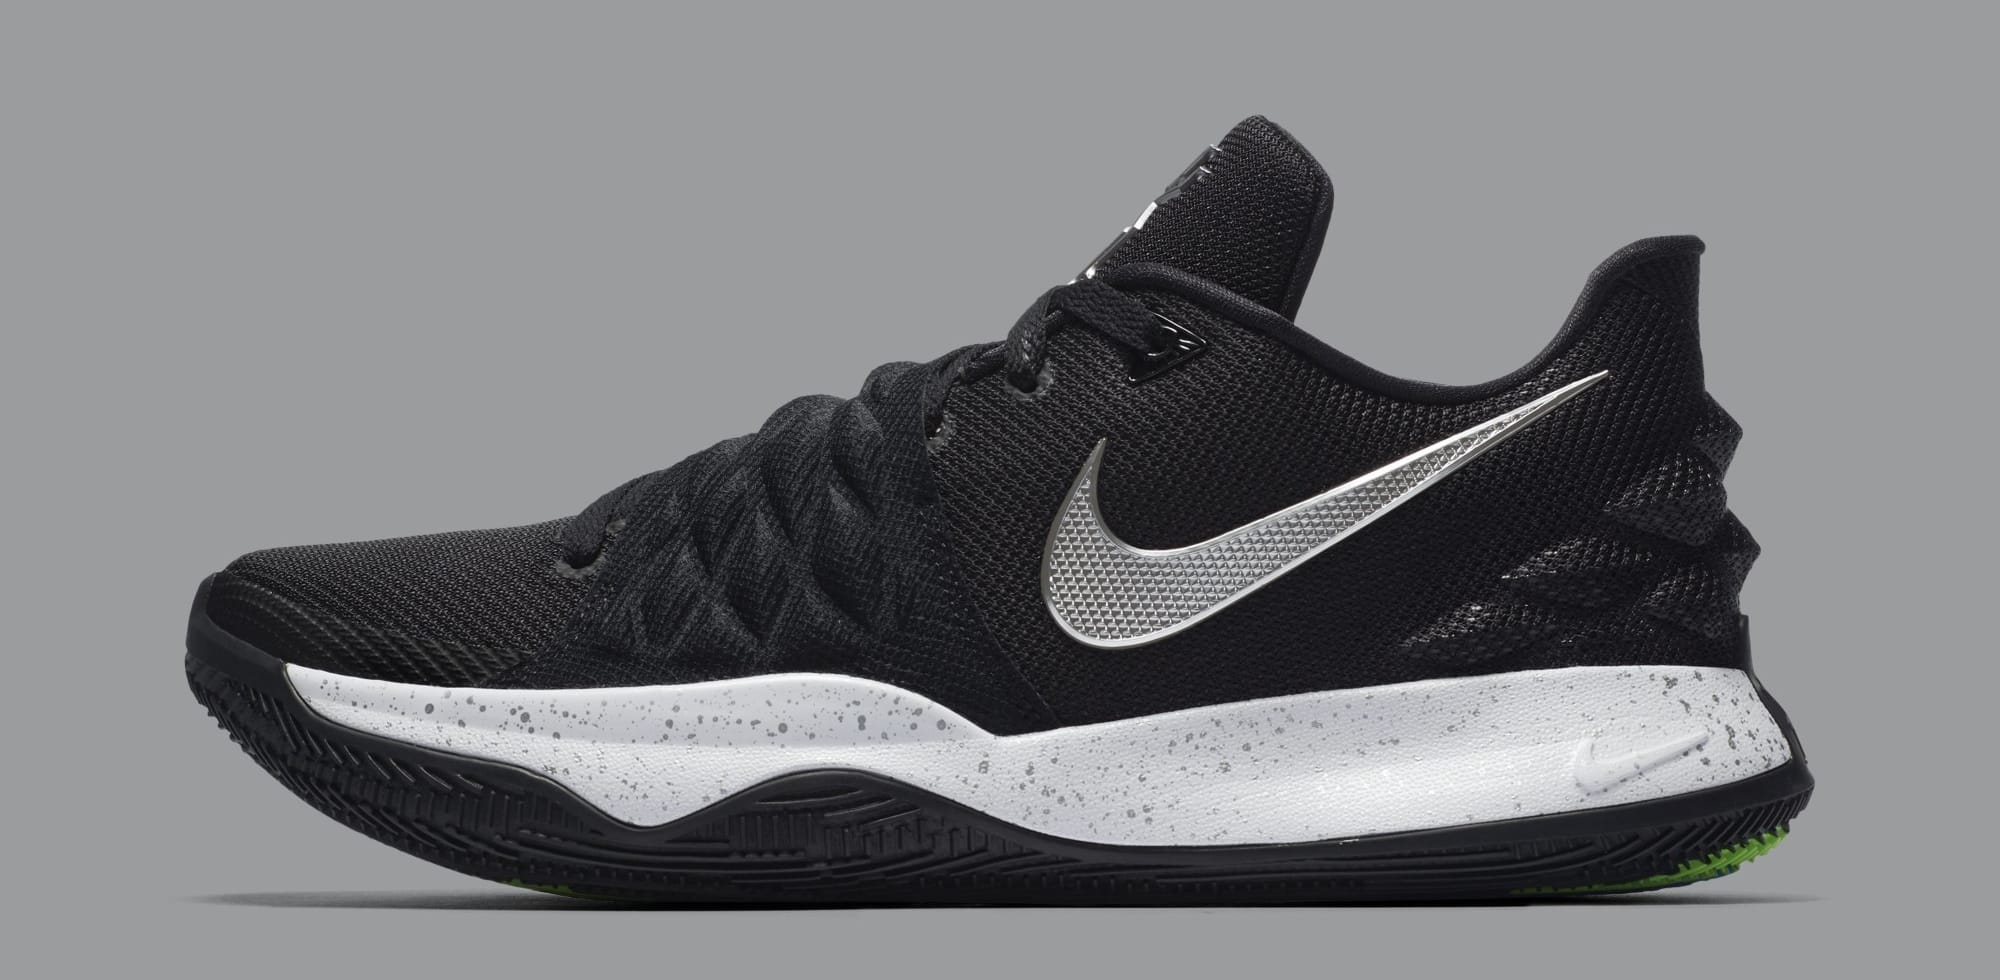 Nike Kyrie 4 Low 'Black/Metallic Silver' AO8979-003 (Lateral)